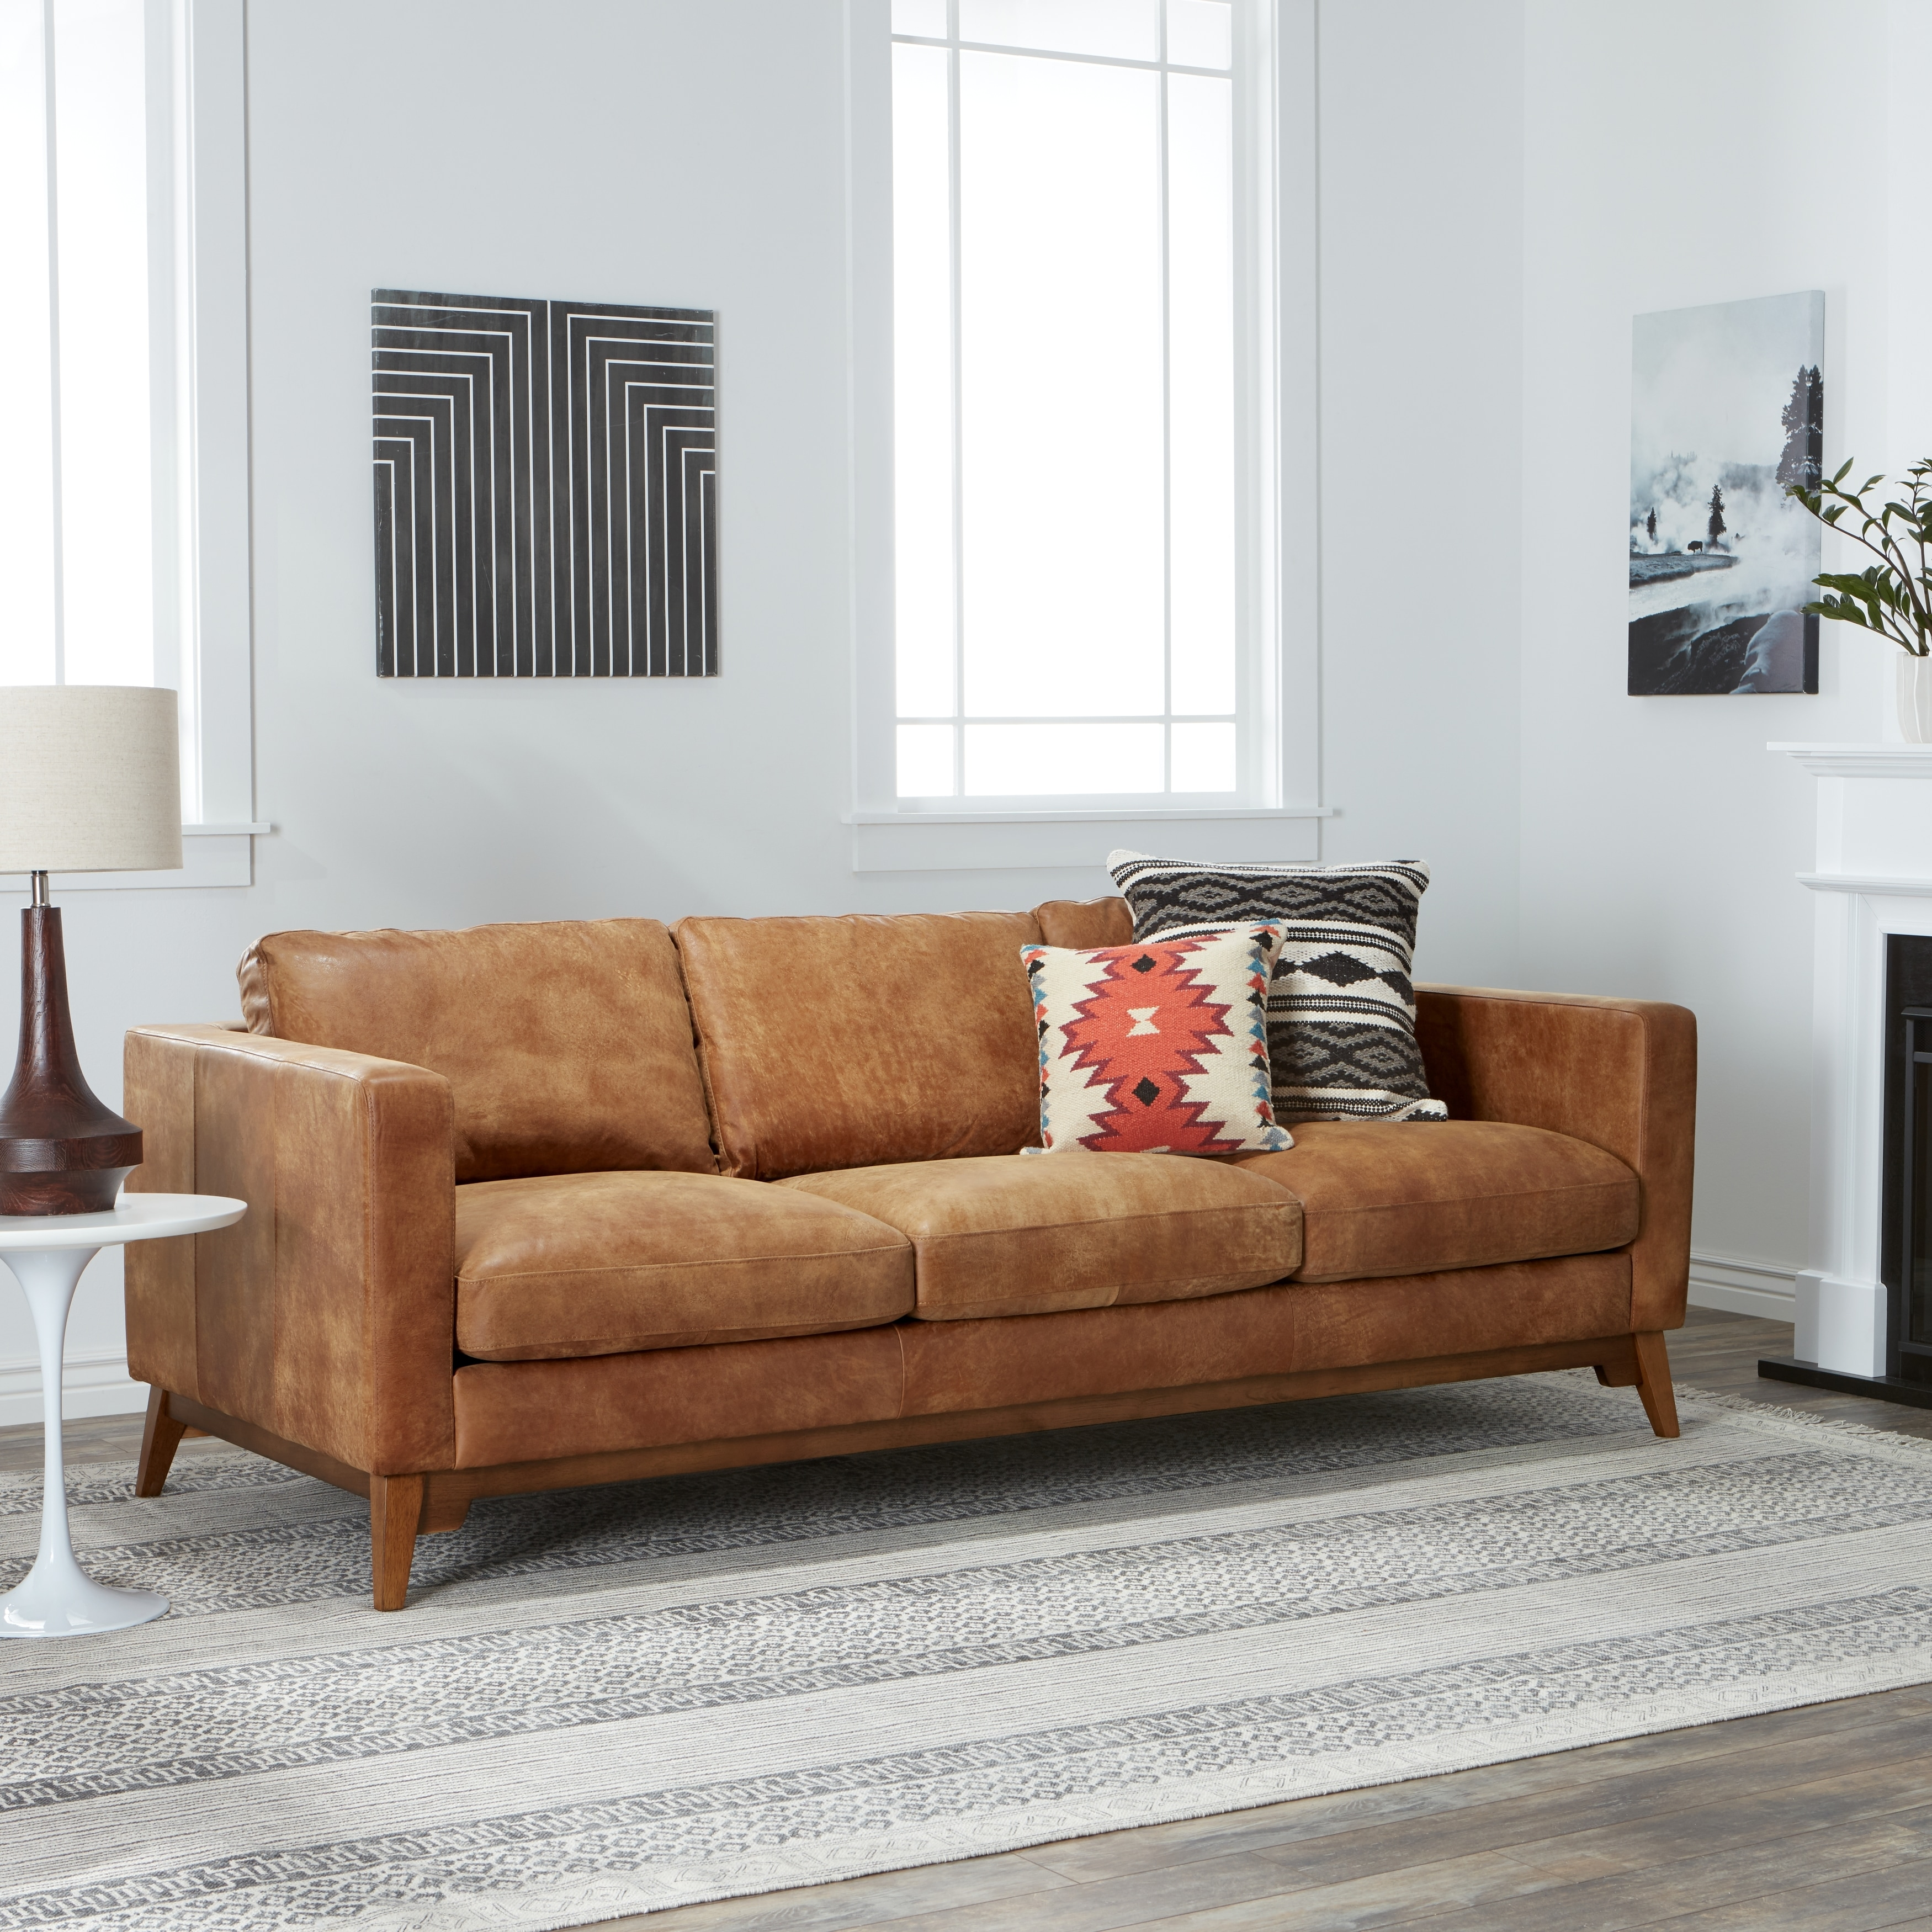 Settee End Of Bed Buy Rustic Sofas Couches Online At Overstock Our Best Living